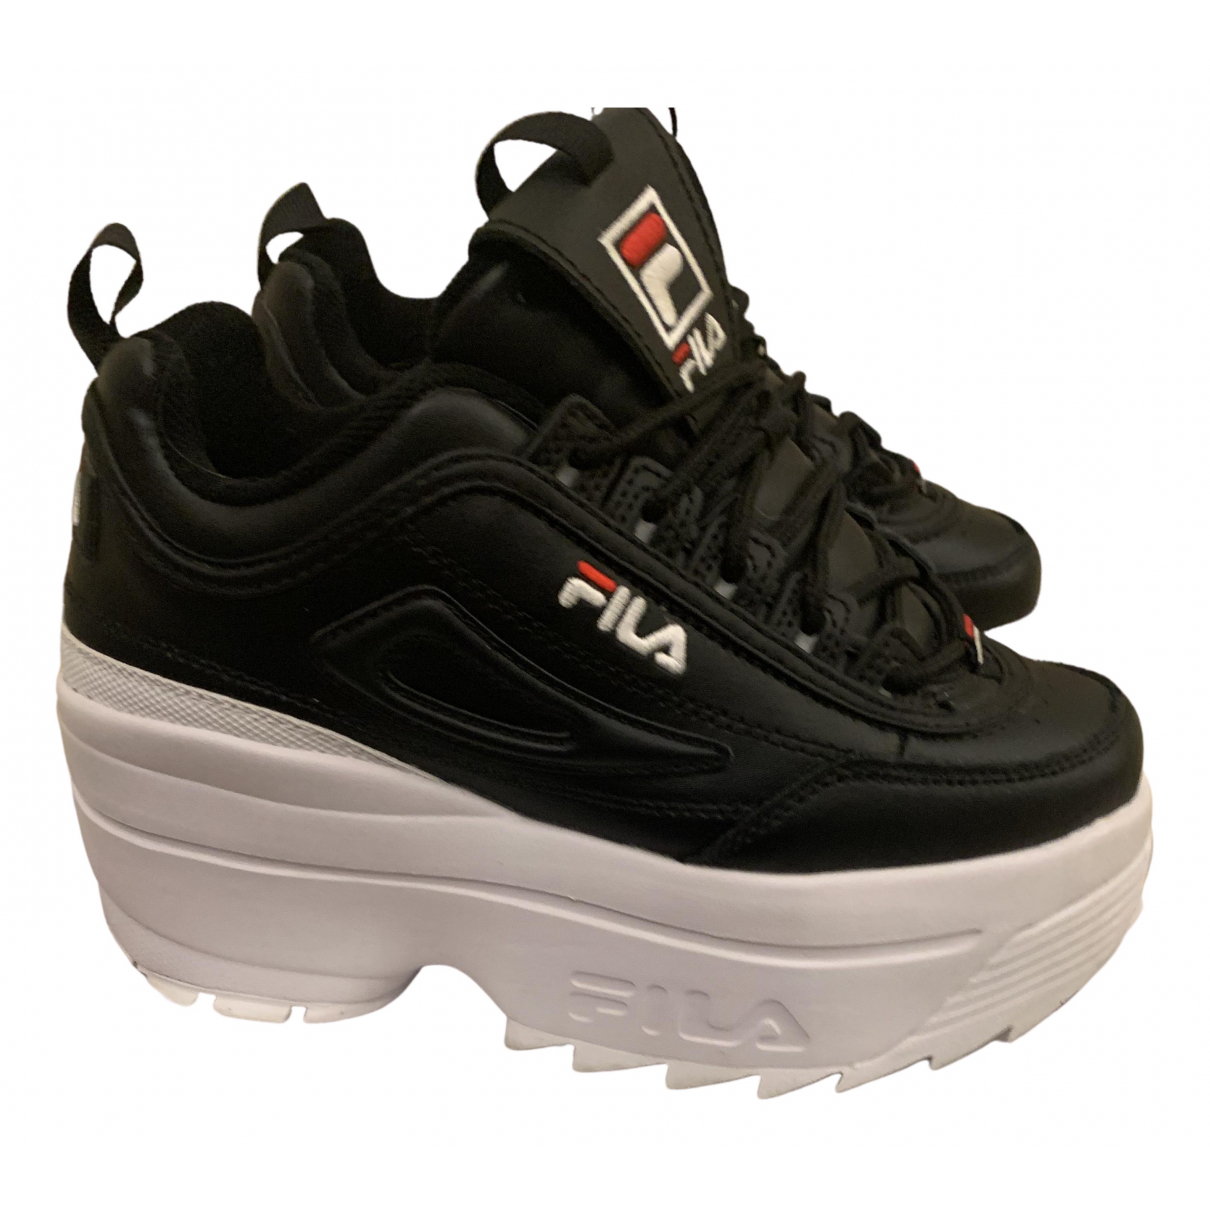 Fila N Black Leather Trainers for Women 37 EU